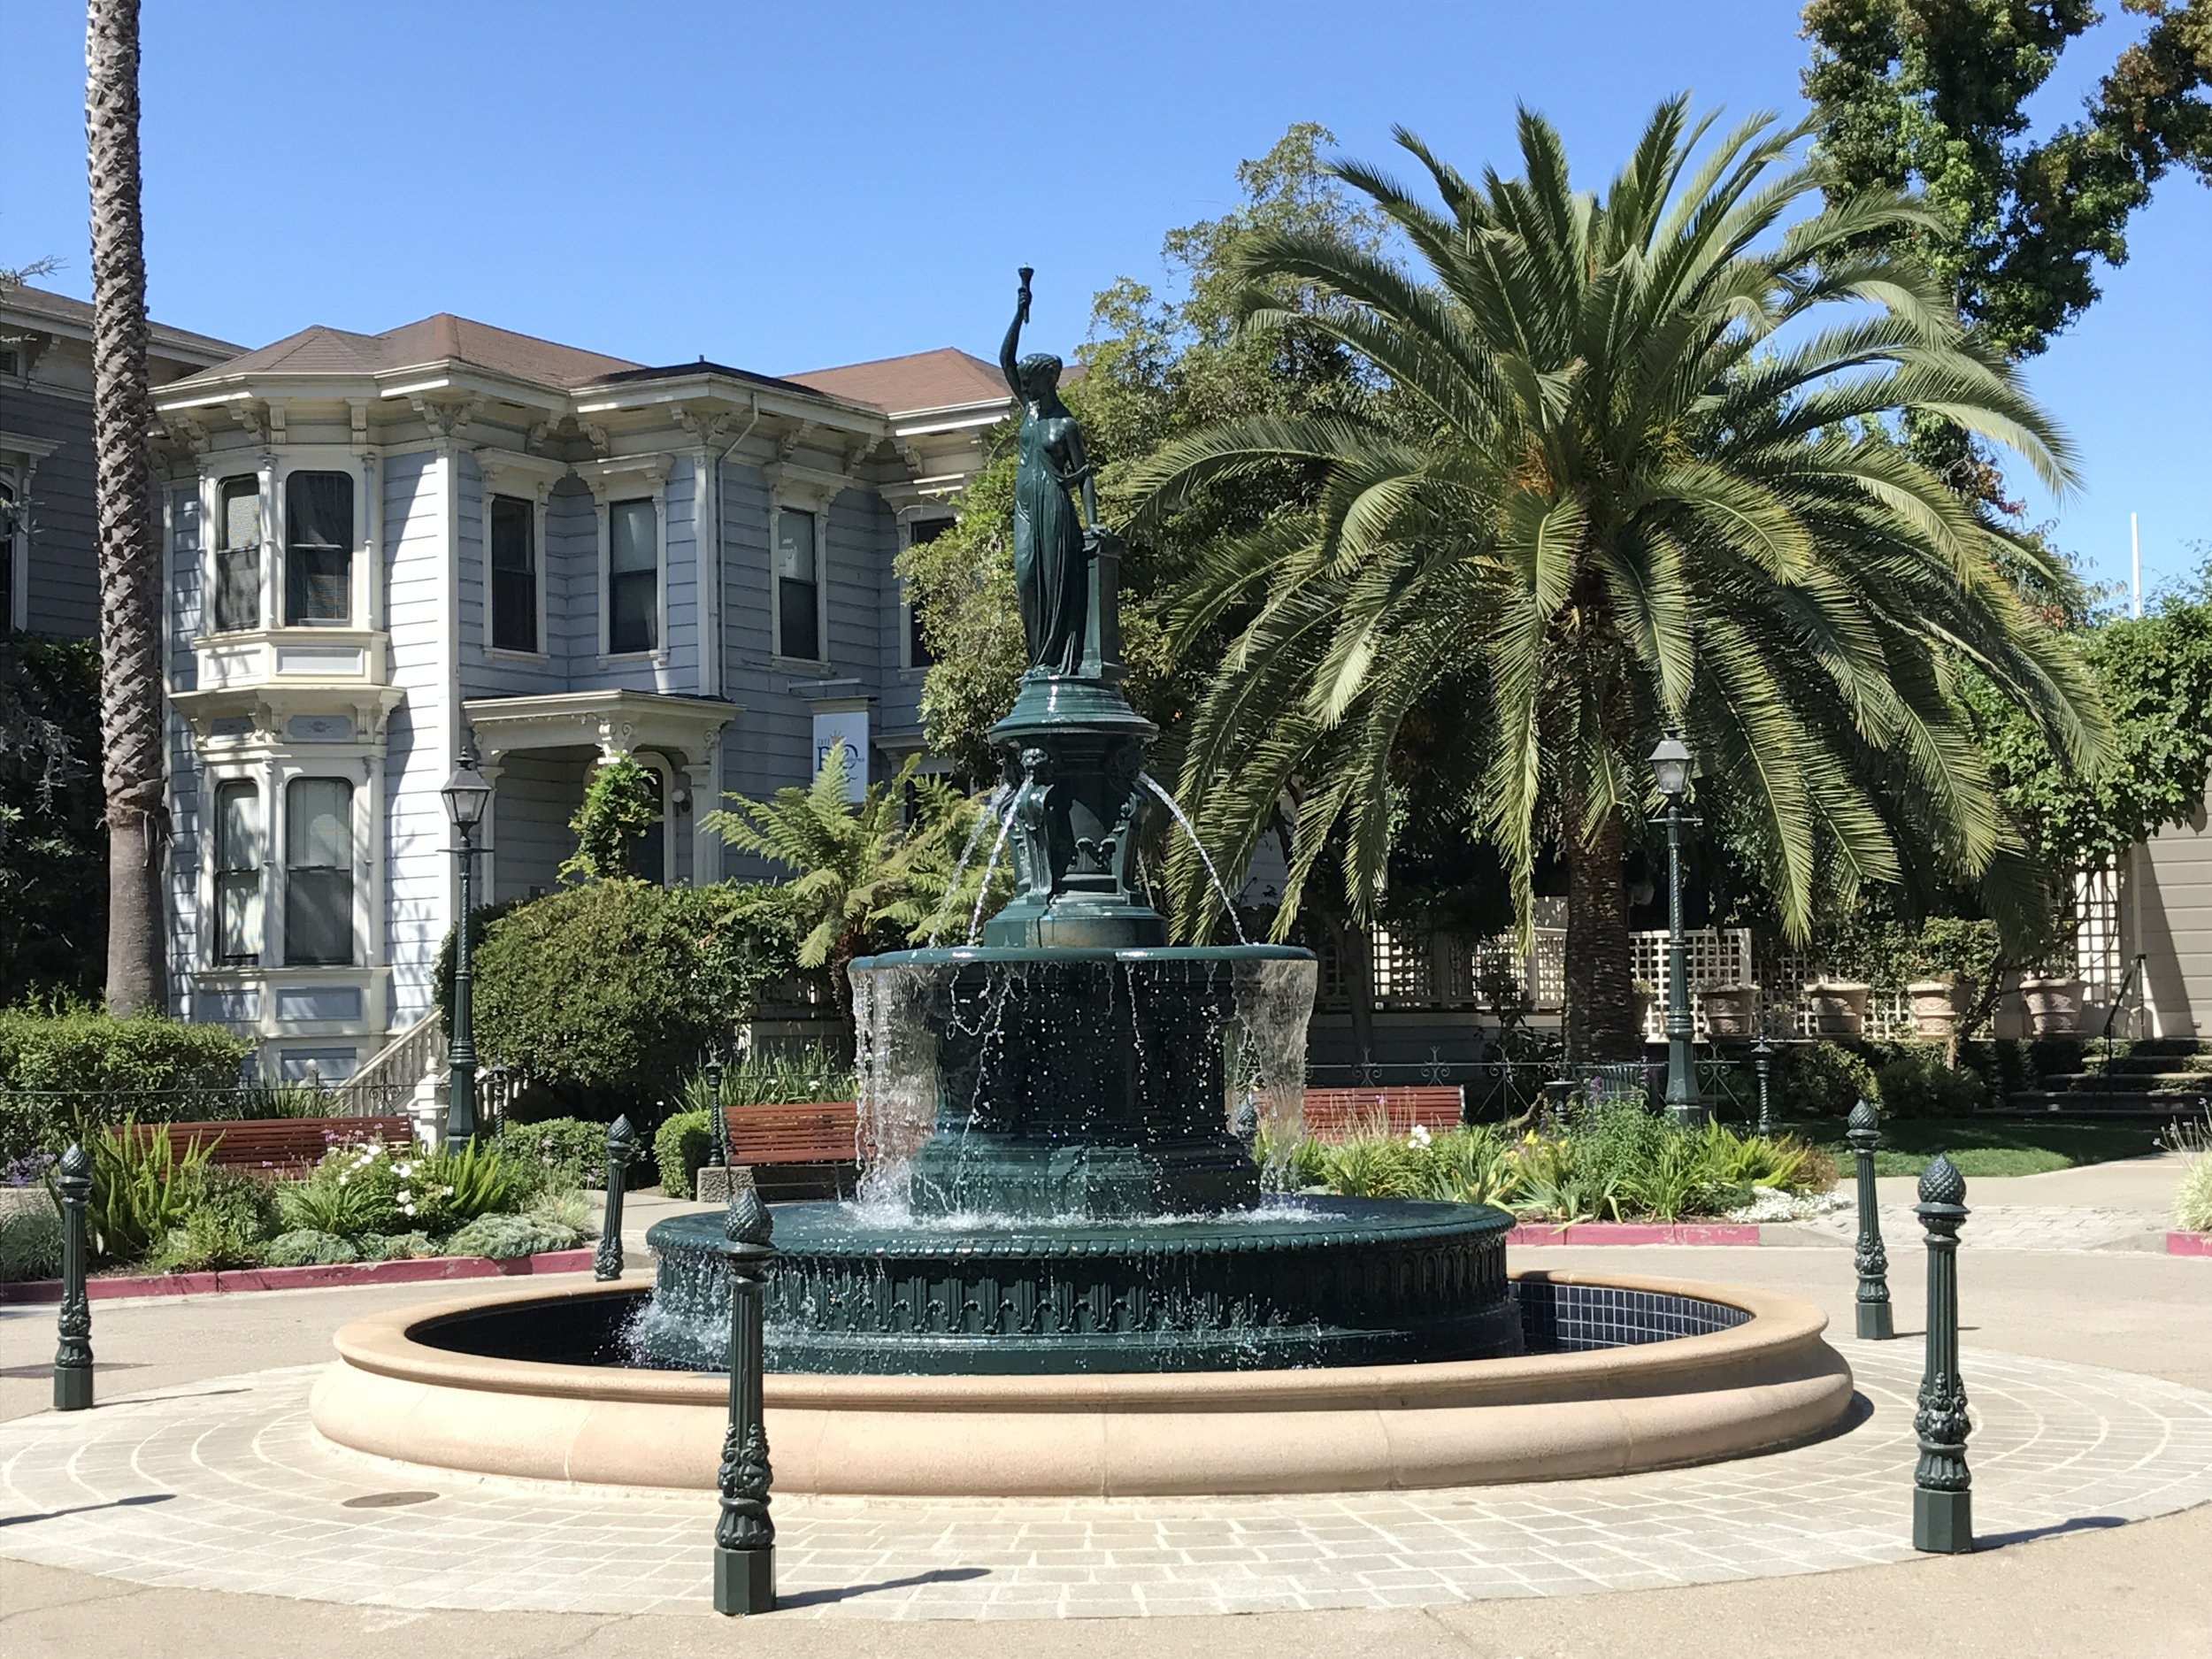 Latham-Ducel fountain in Preservation Park in Oakland, California